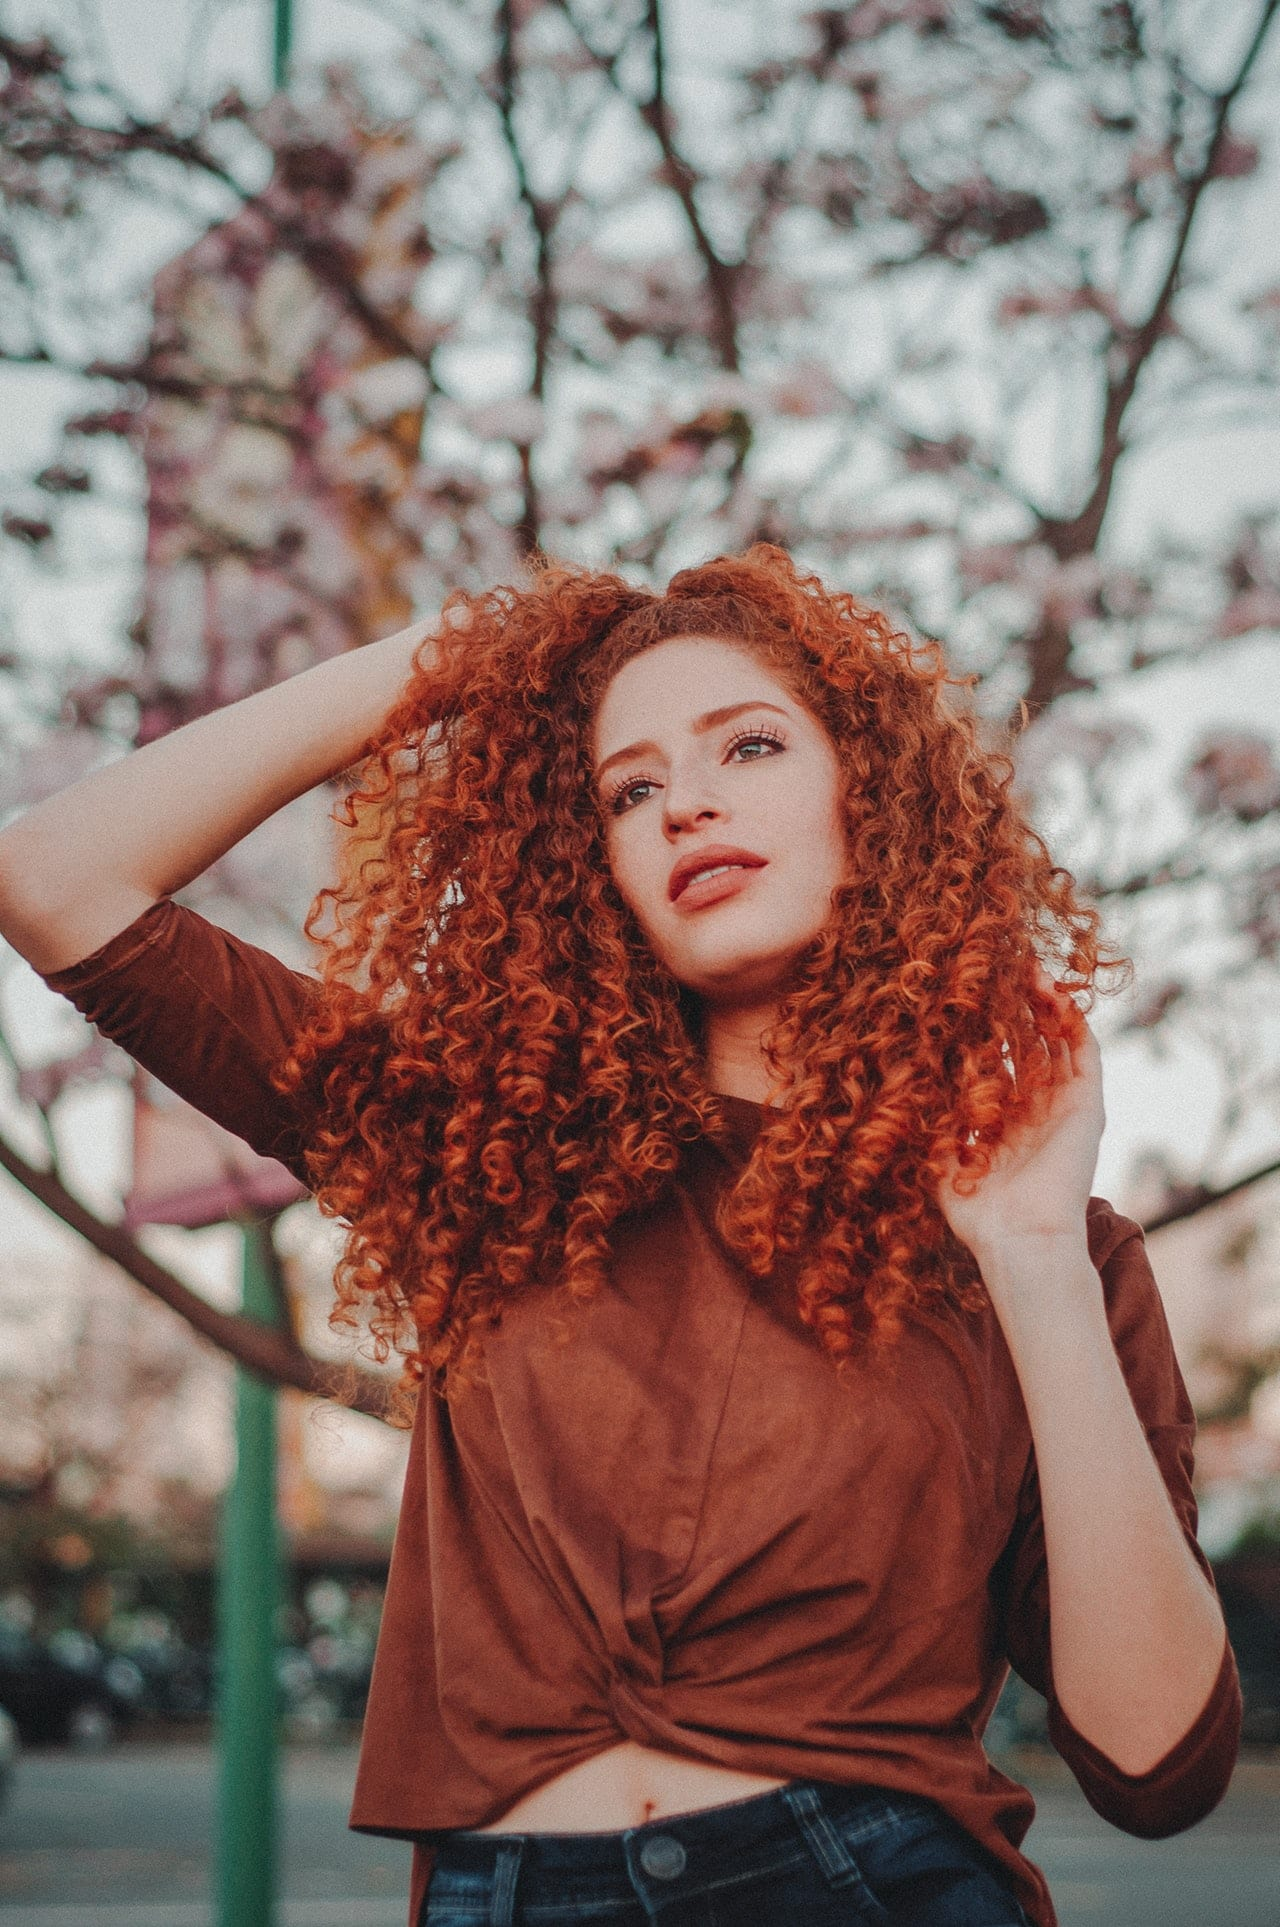 10 interesting facts about redheads